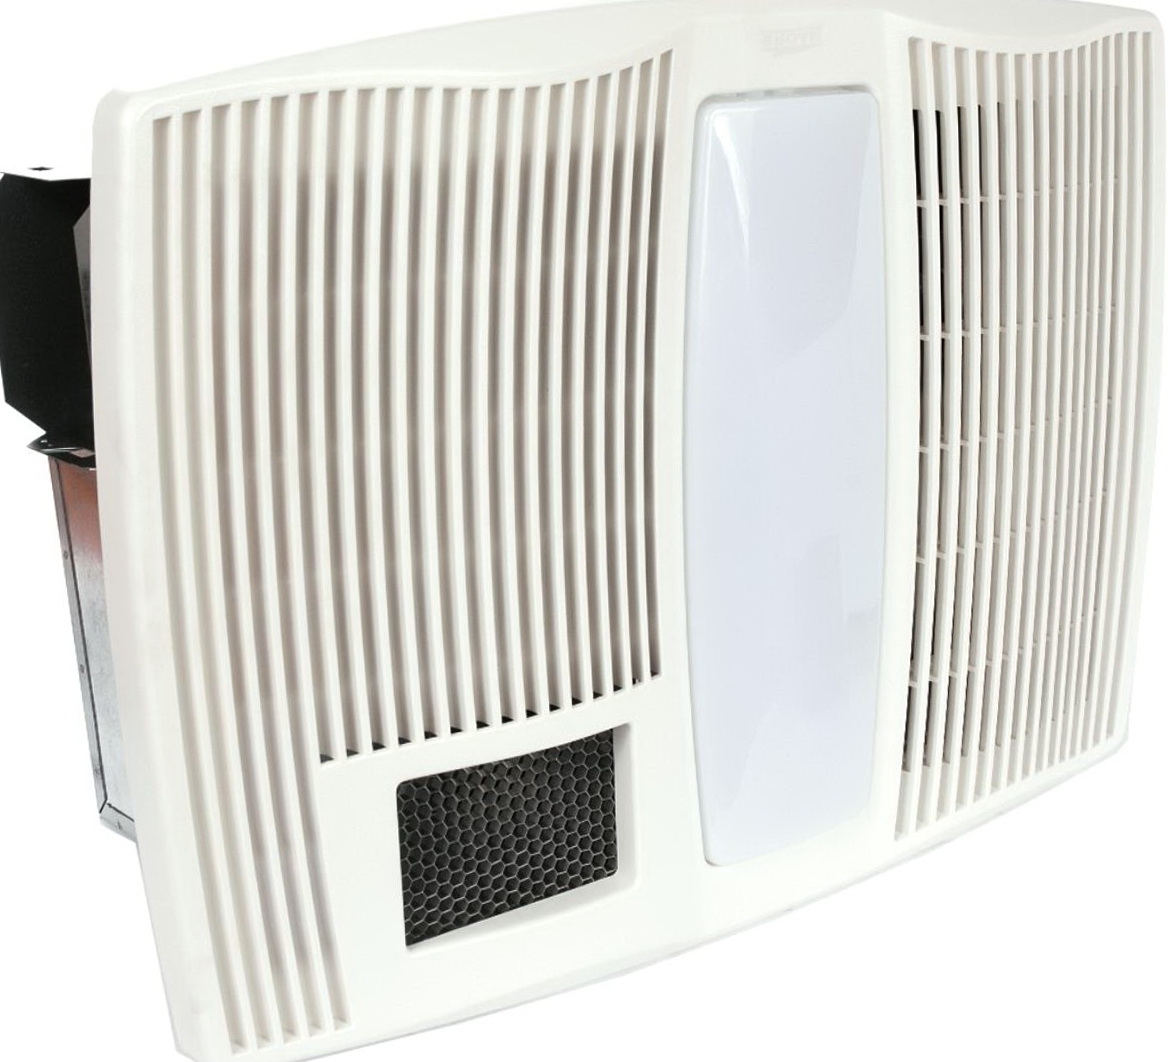 Nutone Bathroom Fan And Heater